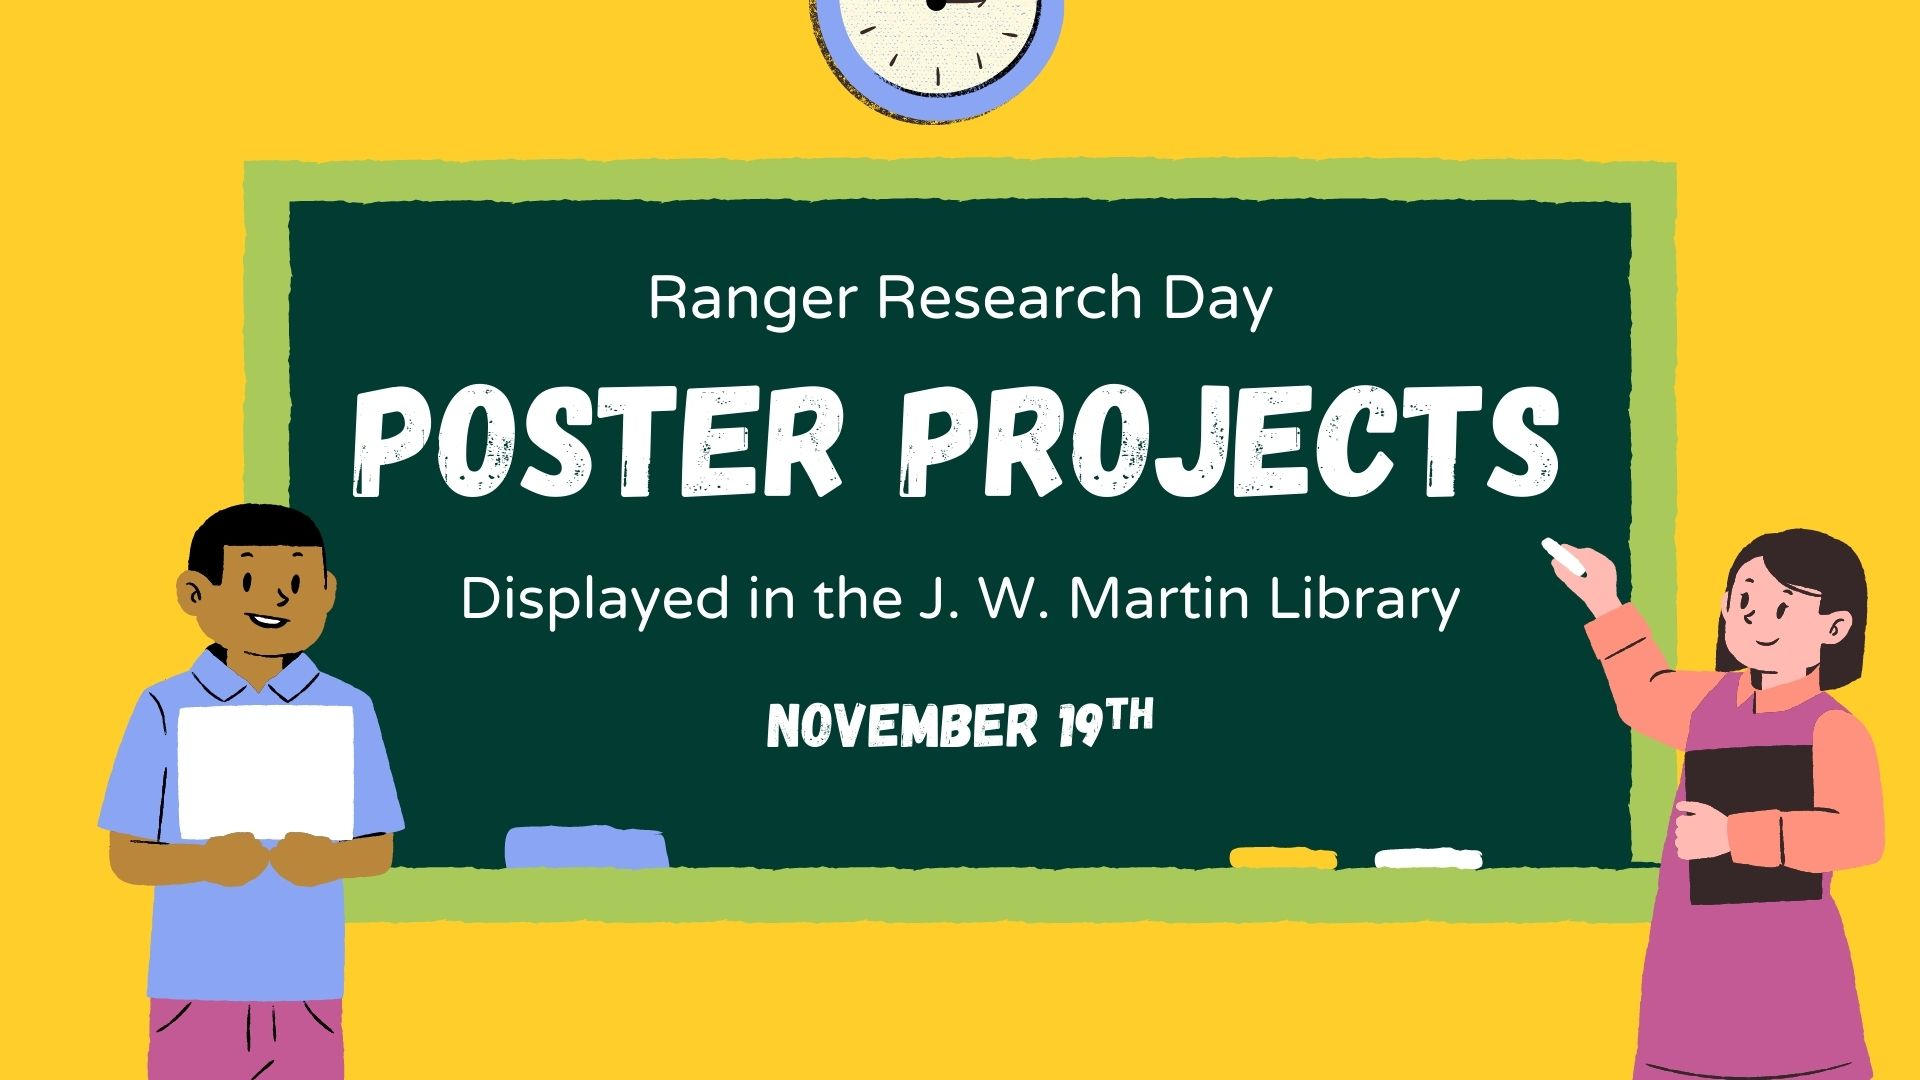 Ranger Research Day posters will be displayed in the library November 19th.